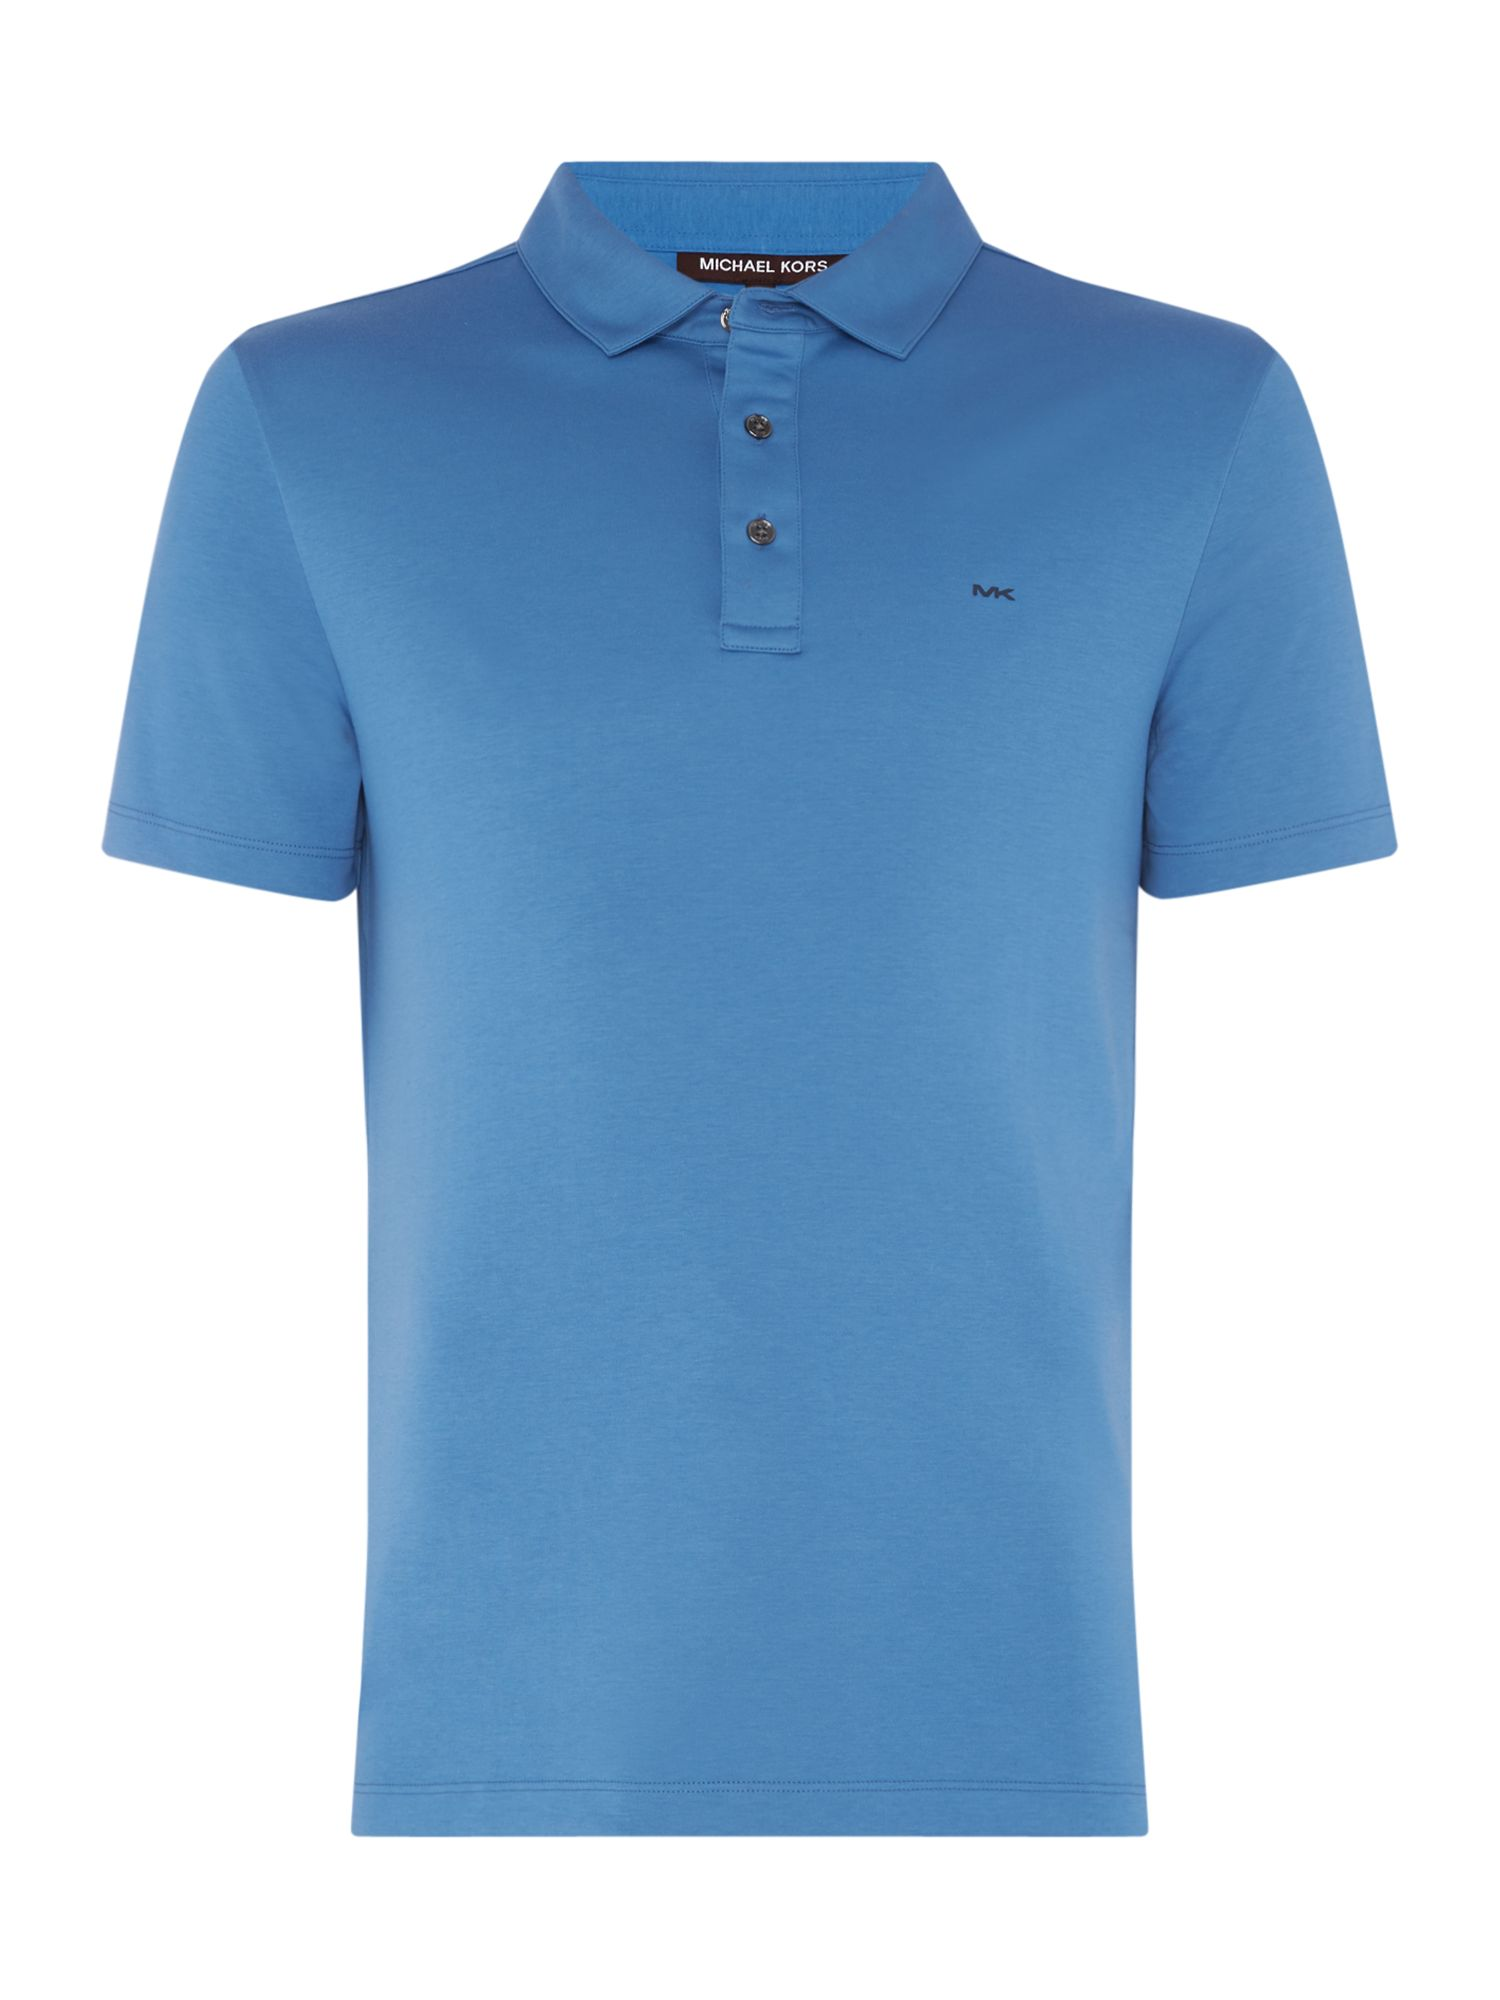 Men's Michael Kors Sleek Slim Fit Polo Shirt, Sea Blue